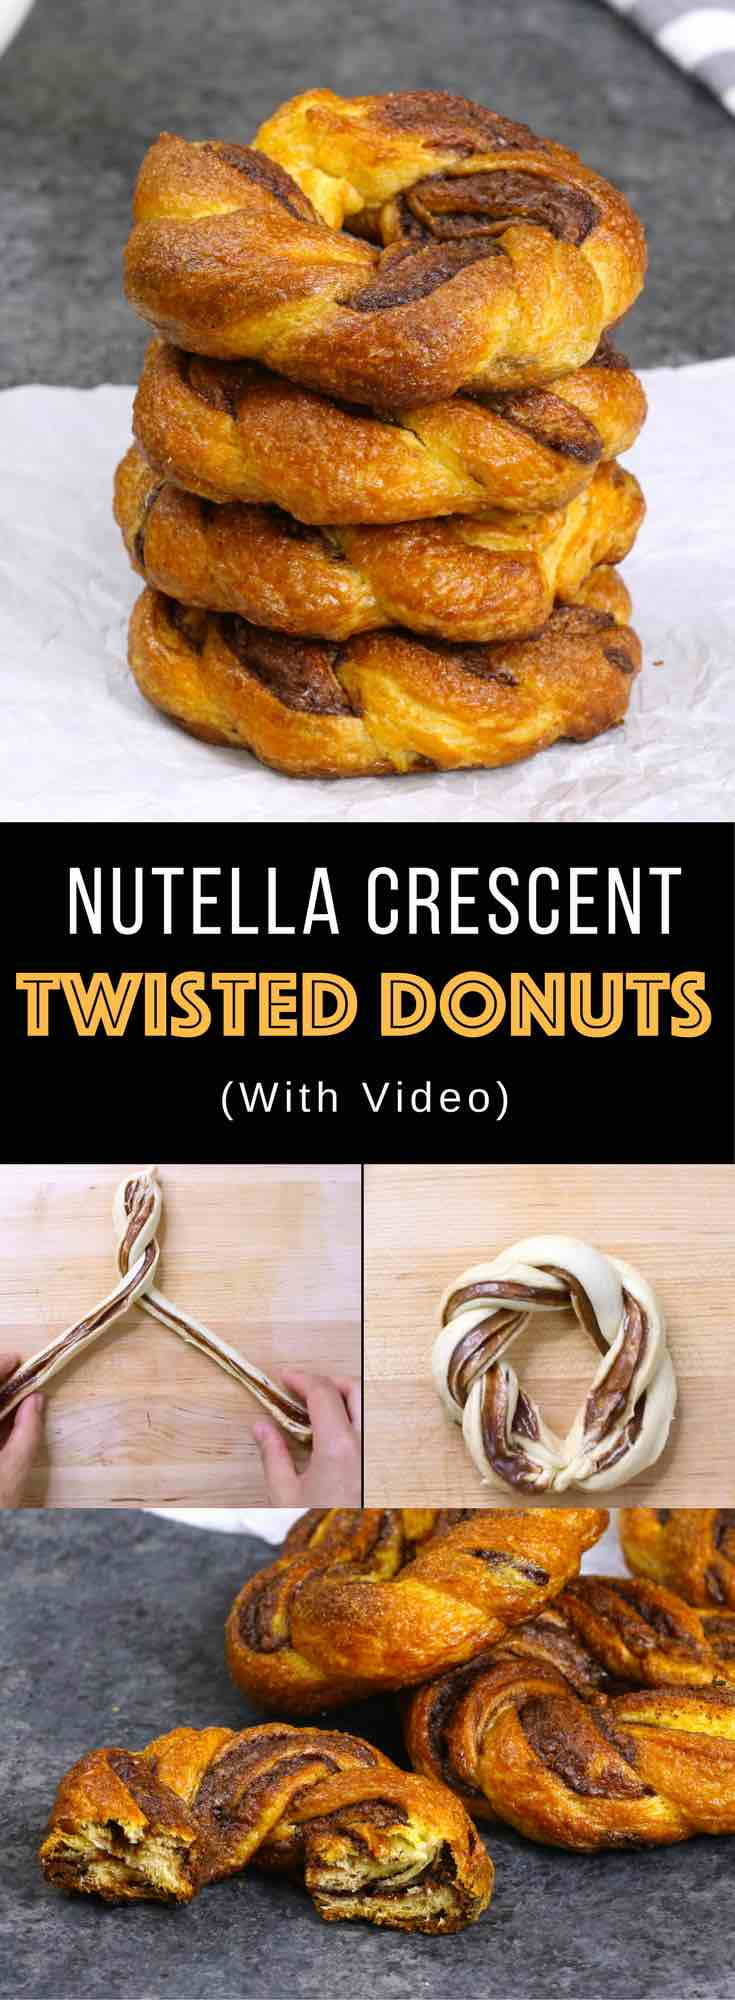 Baked Nutella Crescent Twisted Donuts Tipbuzz